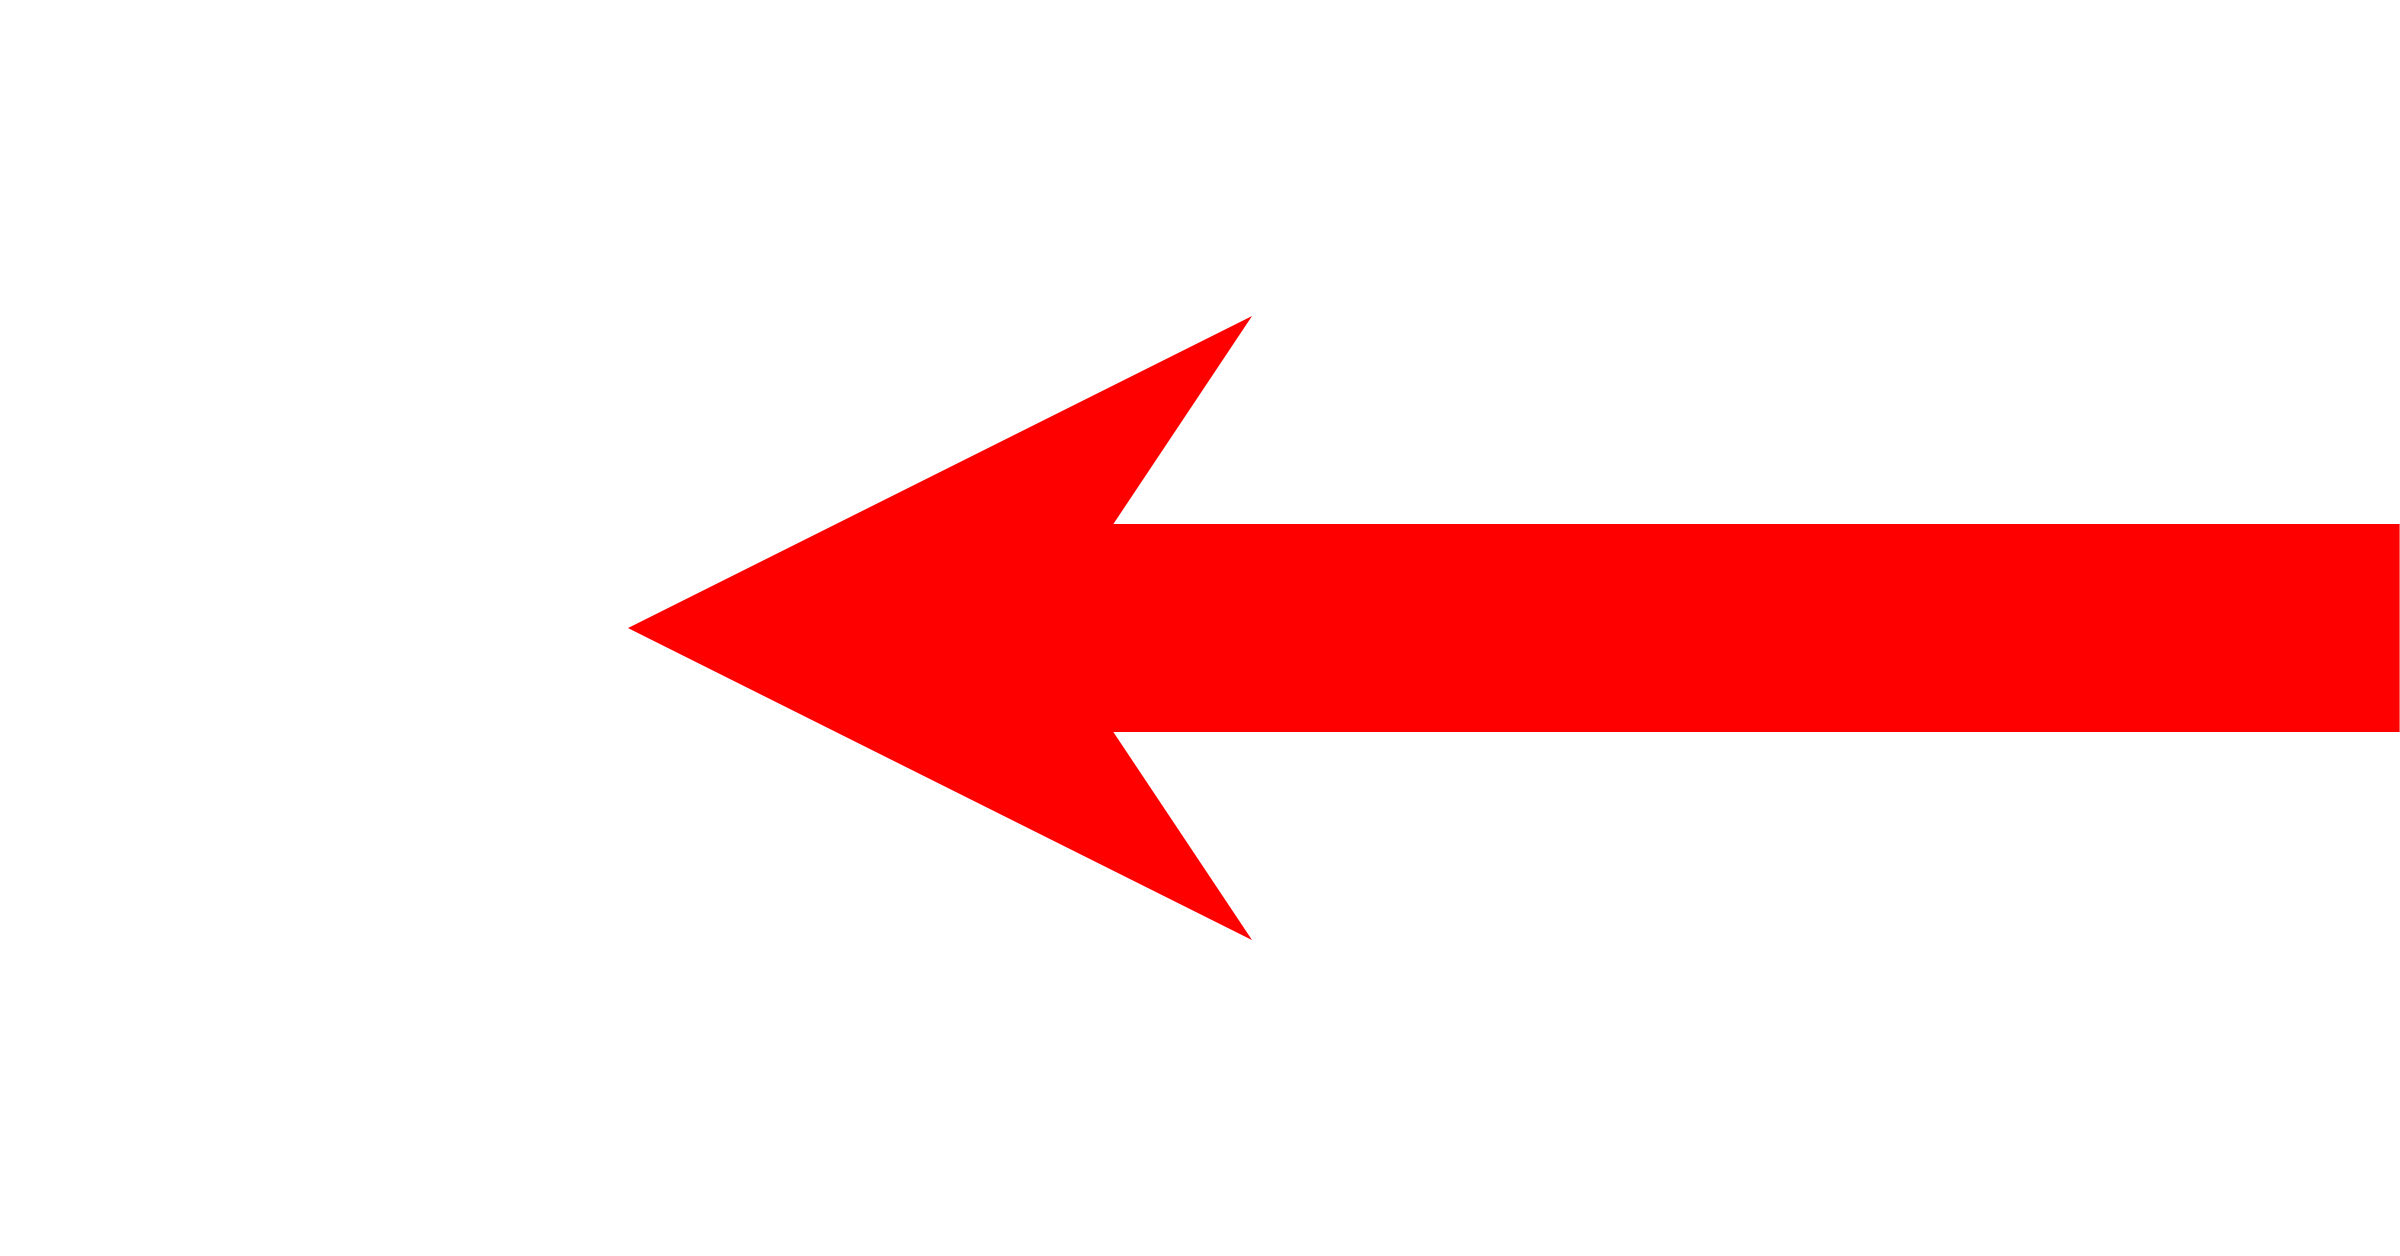 Arrow png files. File short left red